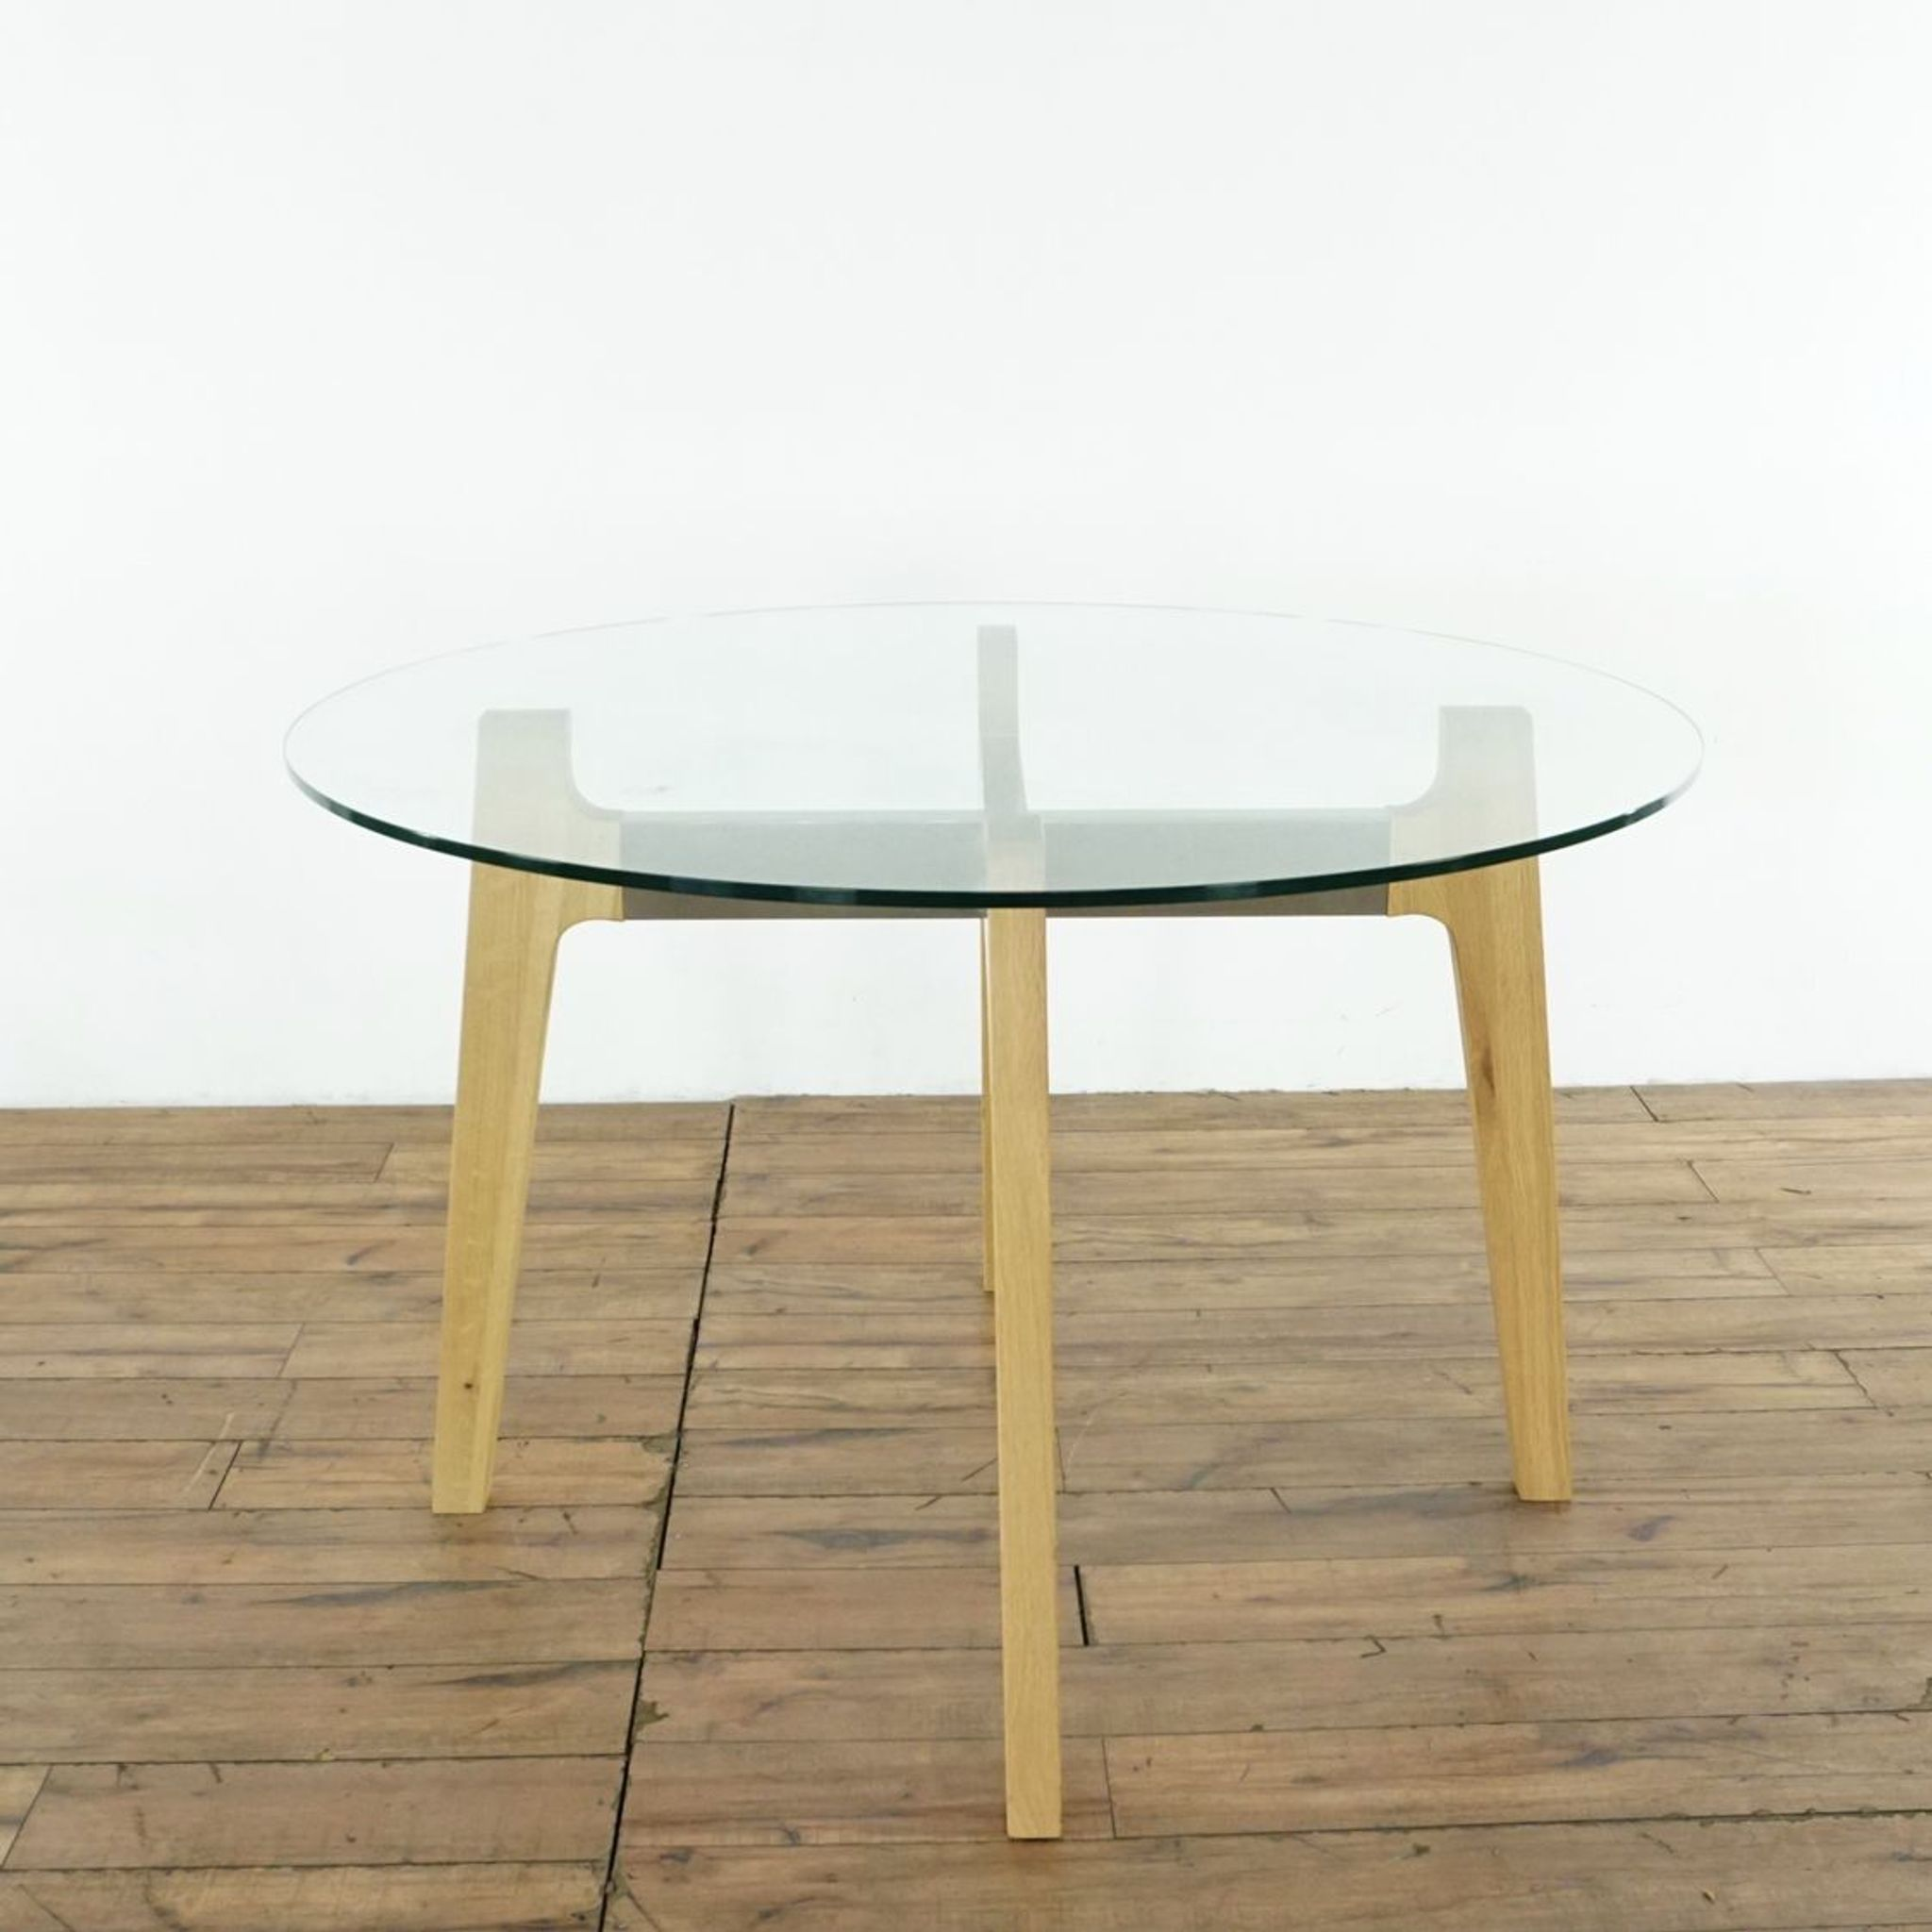 Modern Cb2 Dining Table Cb2 Dining Table Cb2 Dining Dining Table [ 2048 x 2048 Pixel ]